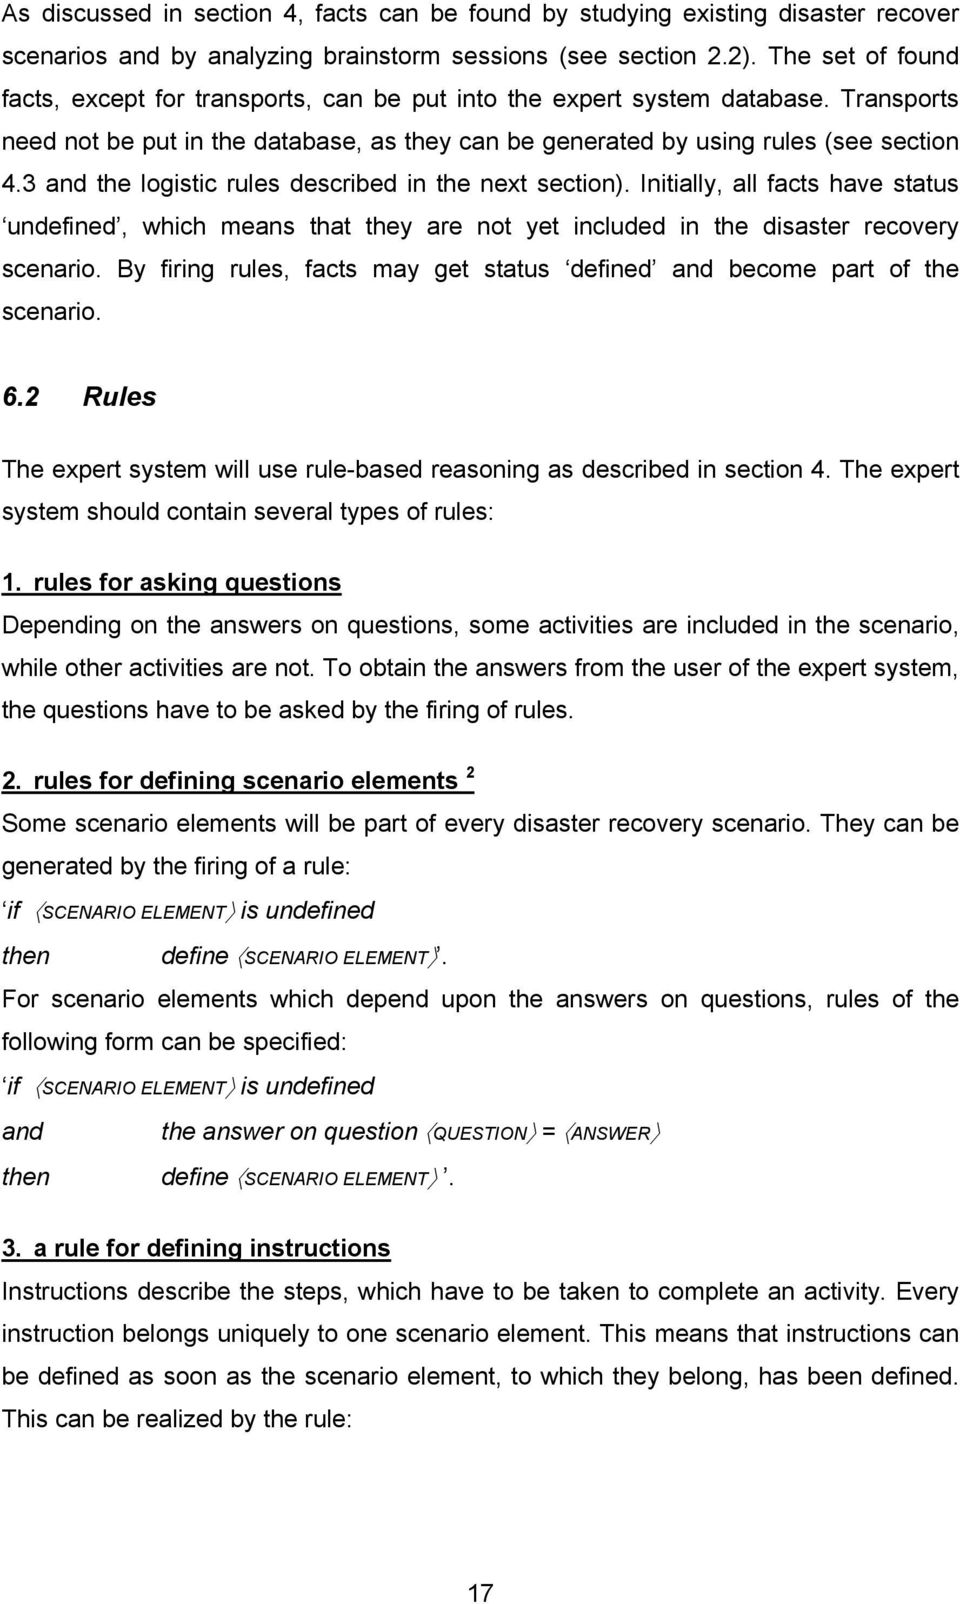 3 and the logistic rules described in the next section). Initially, all facts have status undefined, which means that they are not yet included in the disaster recovery scenario.